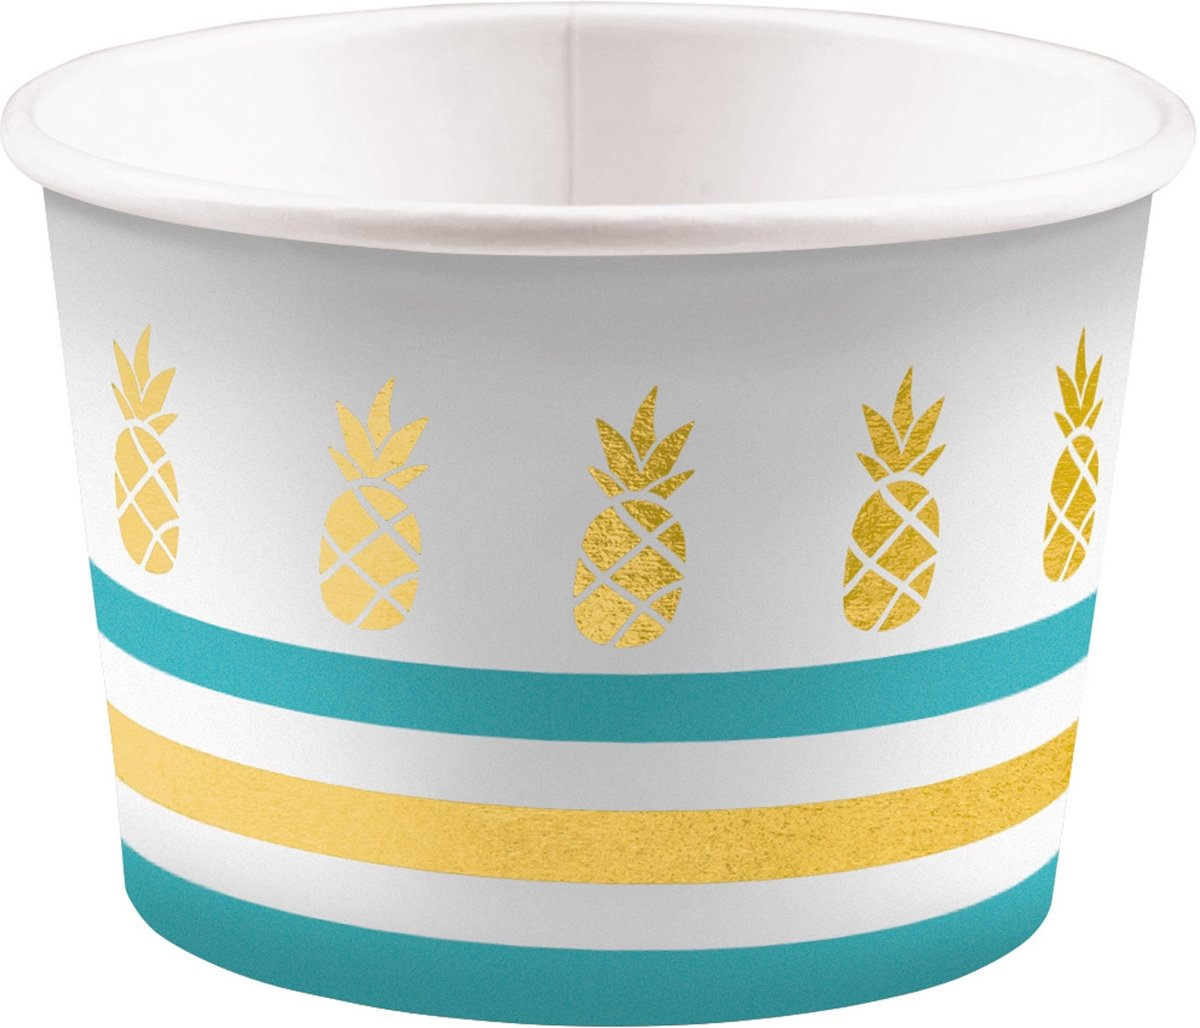 8 Ice Bowls Pineapple Vibes 270ml